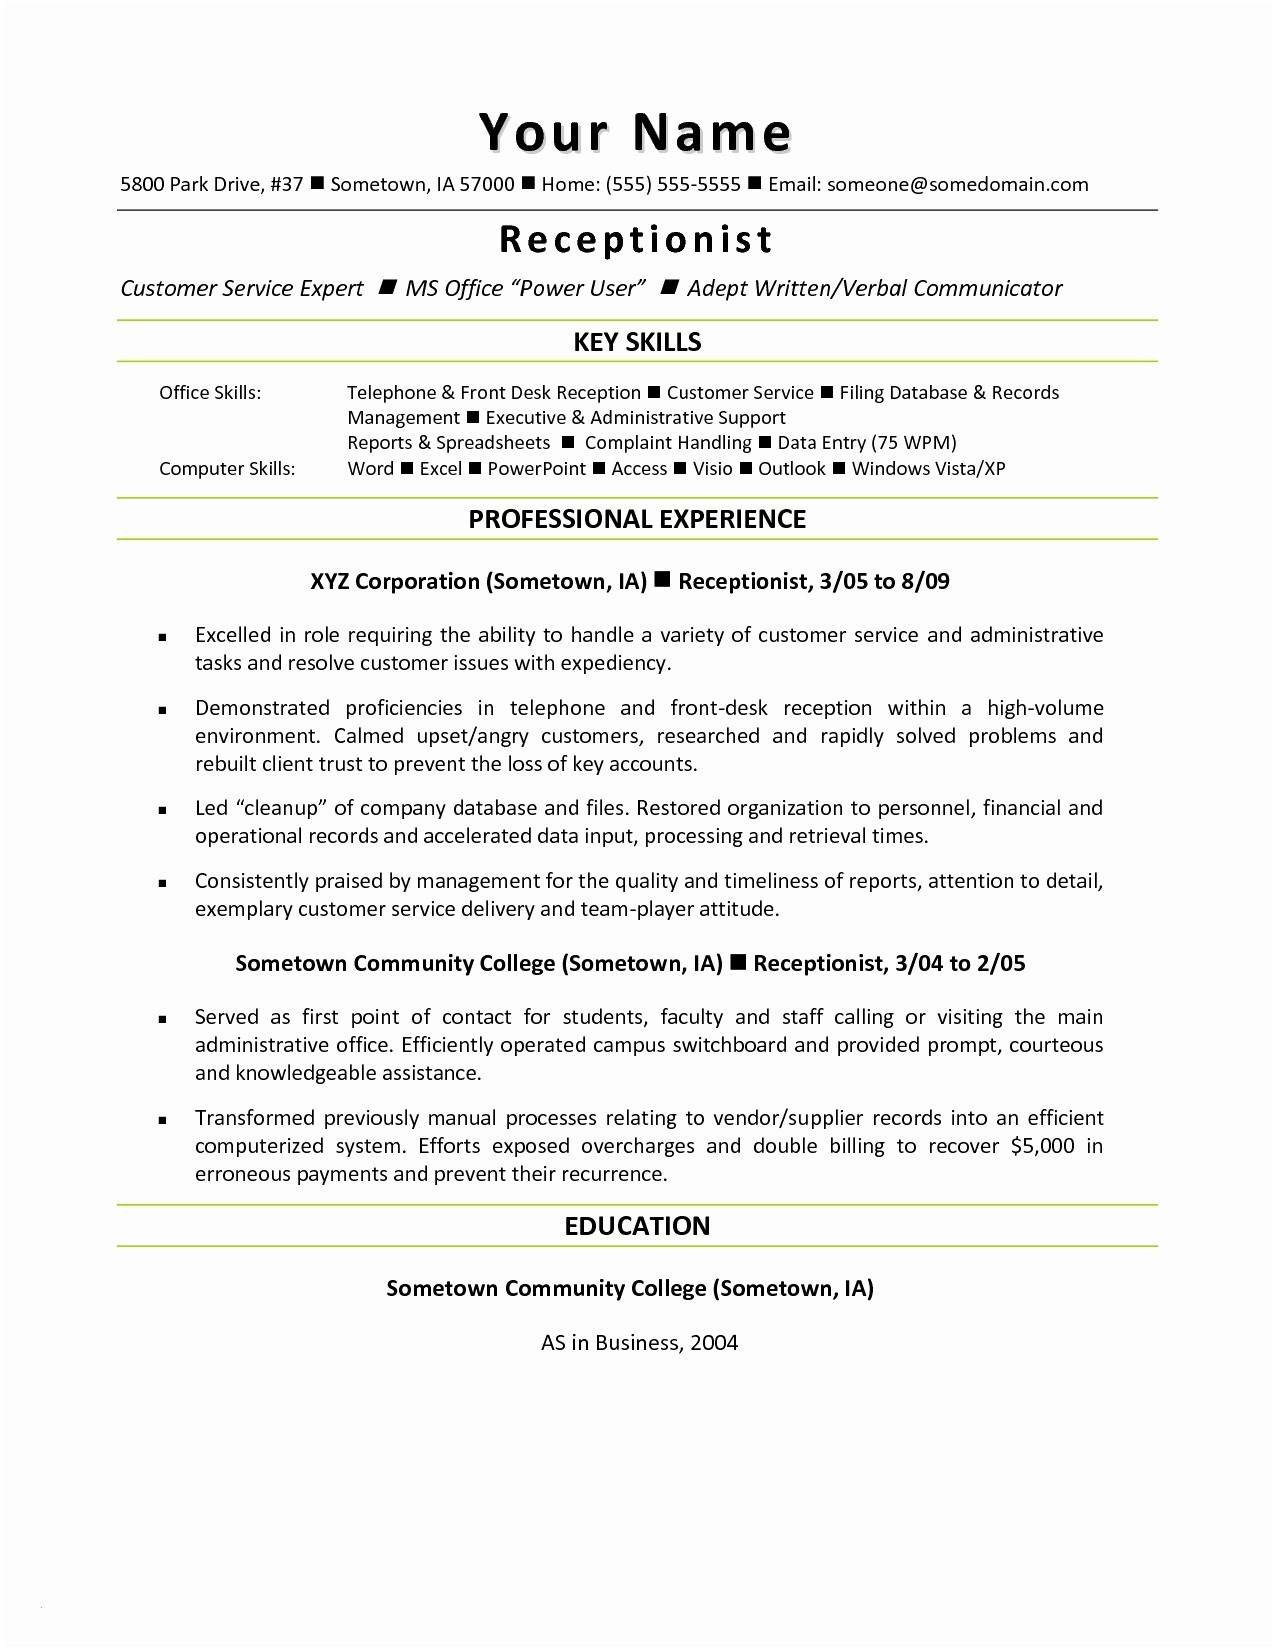 Resume for Driving Job - Consulting Resume Template Awesome Resume Mail format Sample Fresh